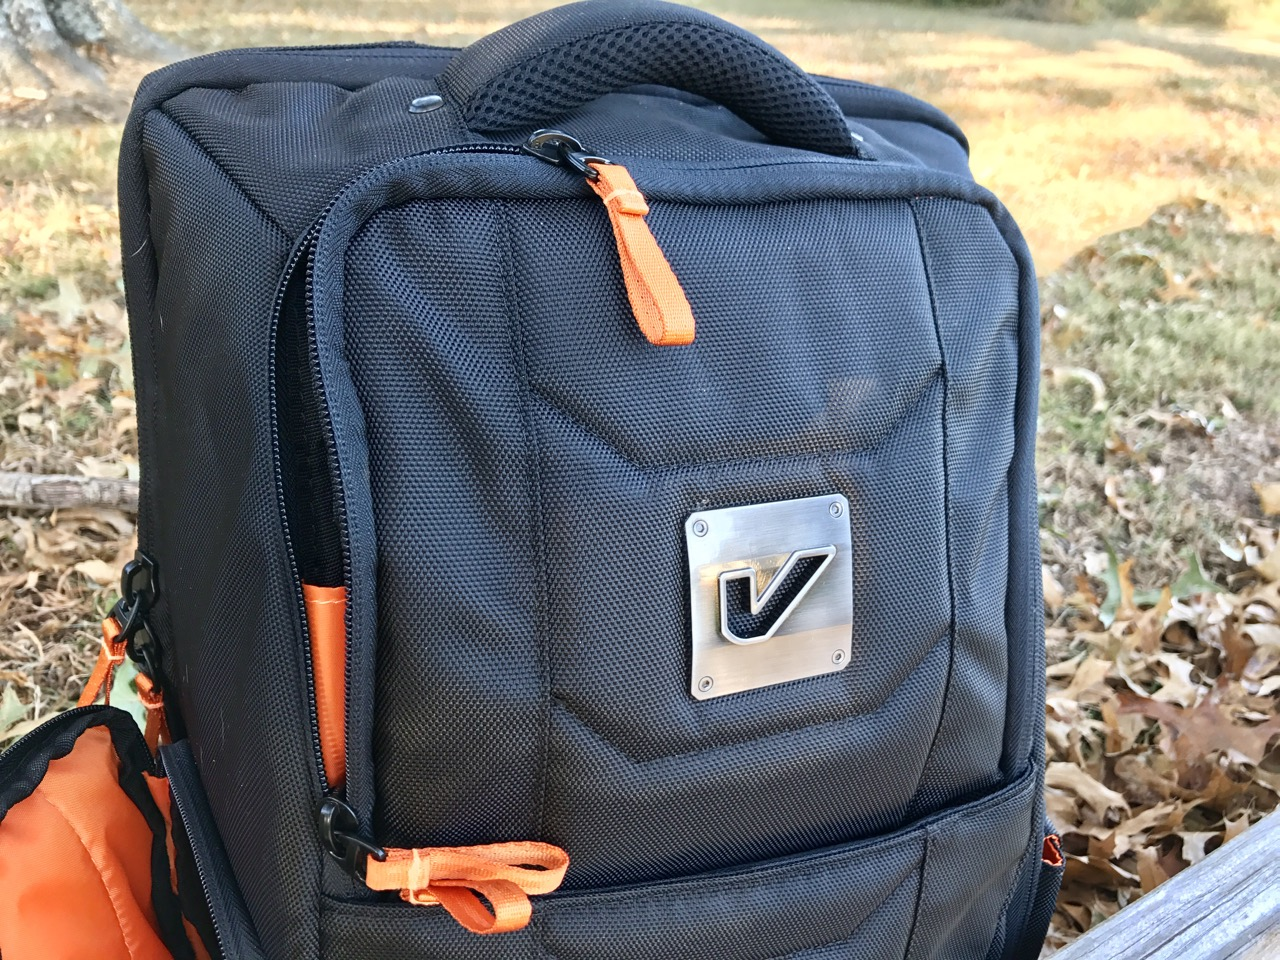 Backpack Review: The GRUV GEAR Club Bag 11